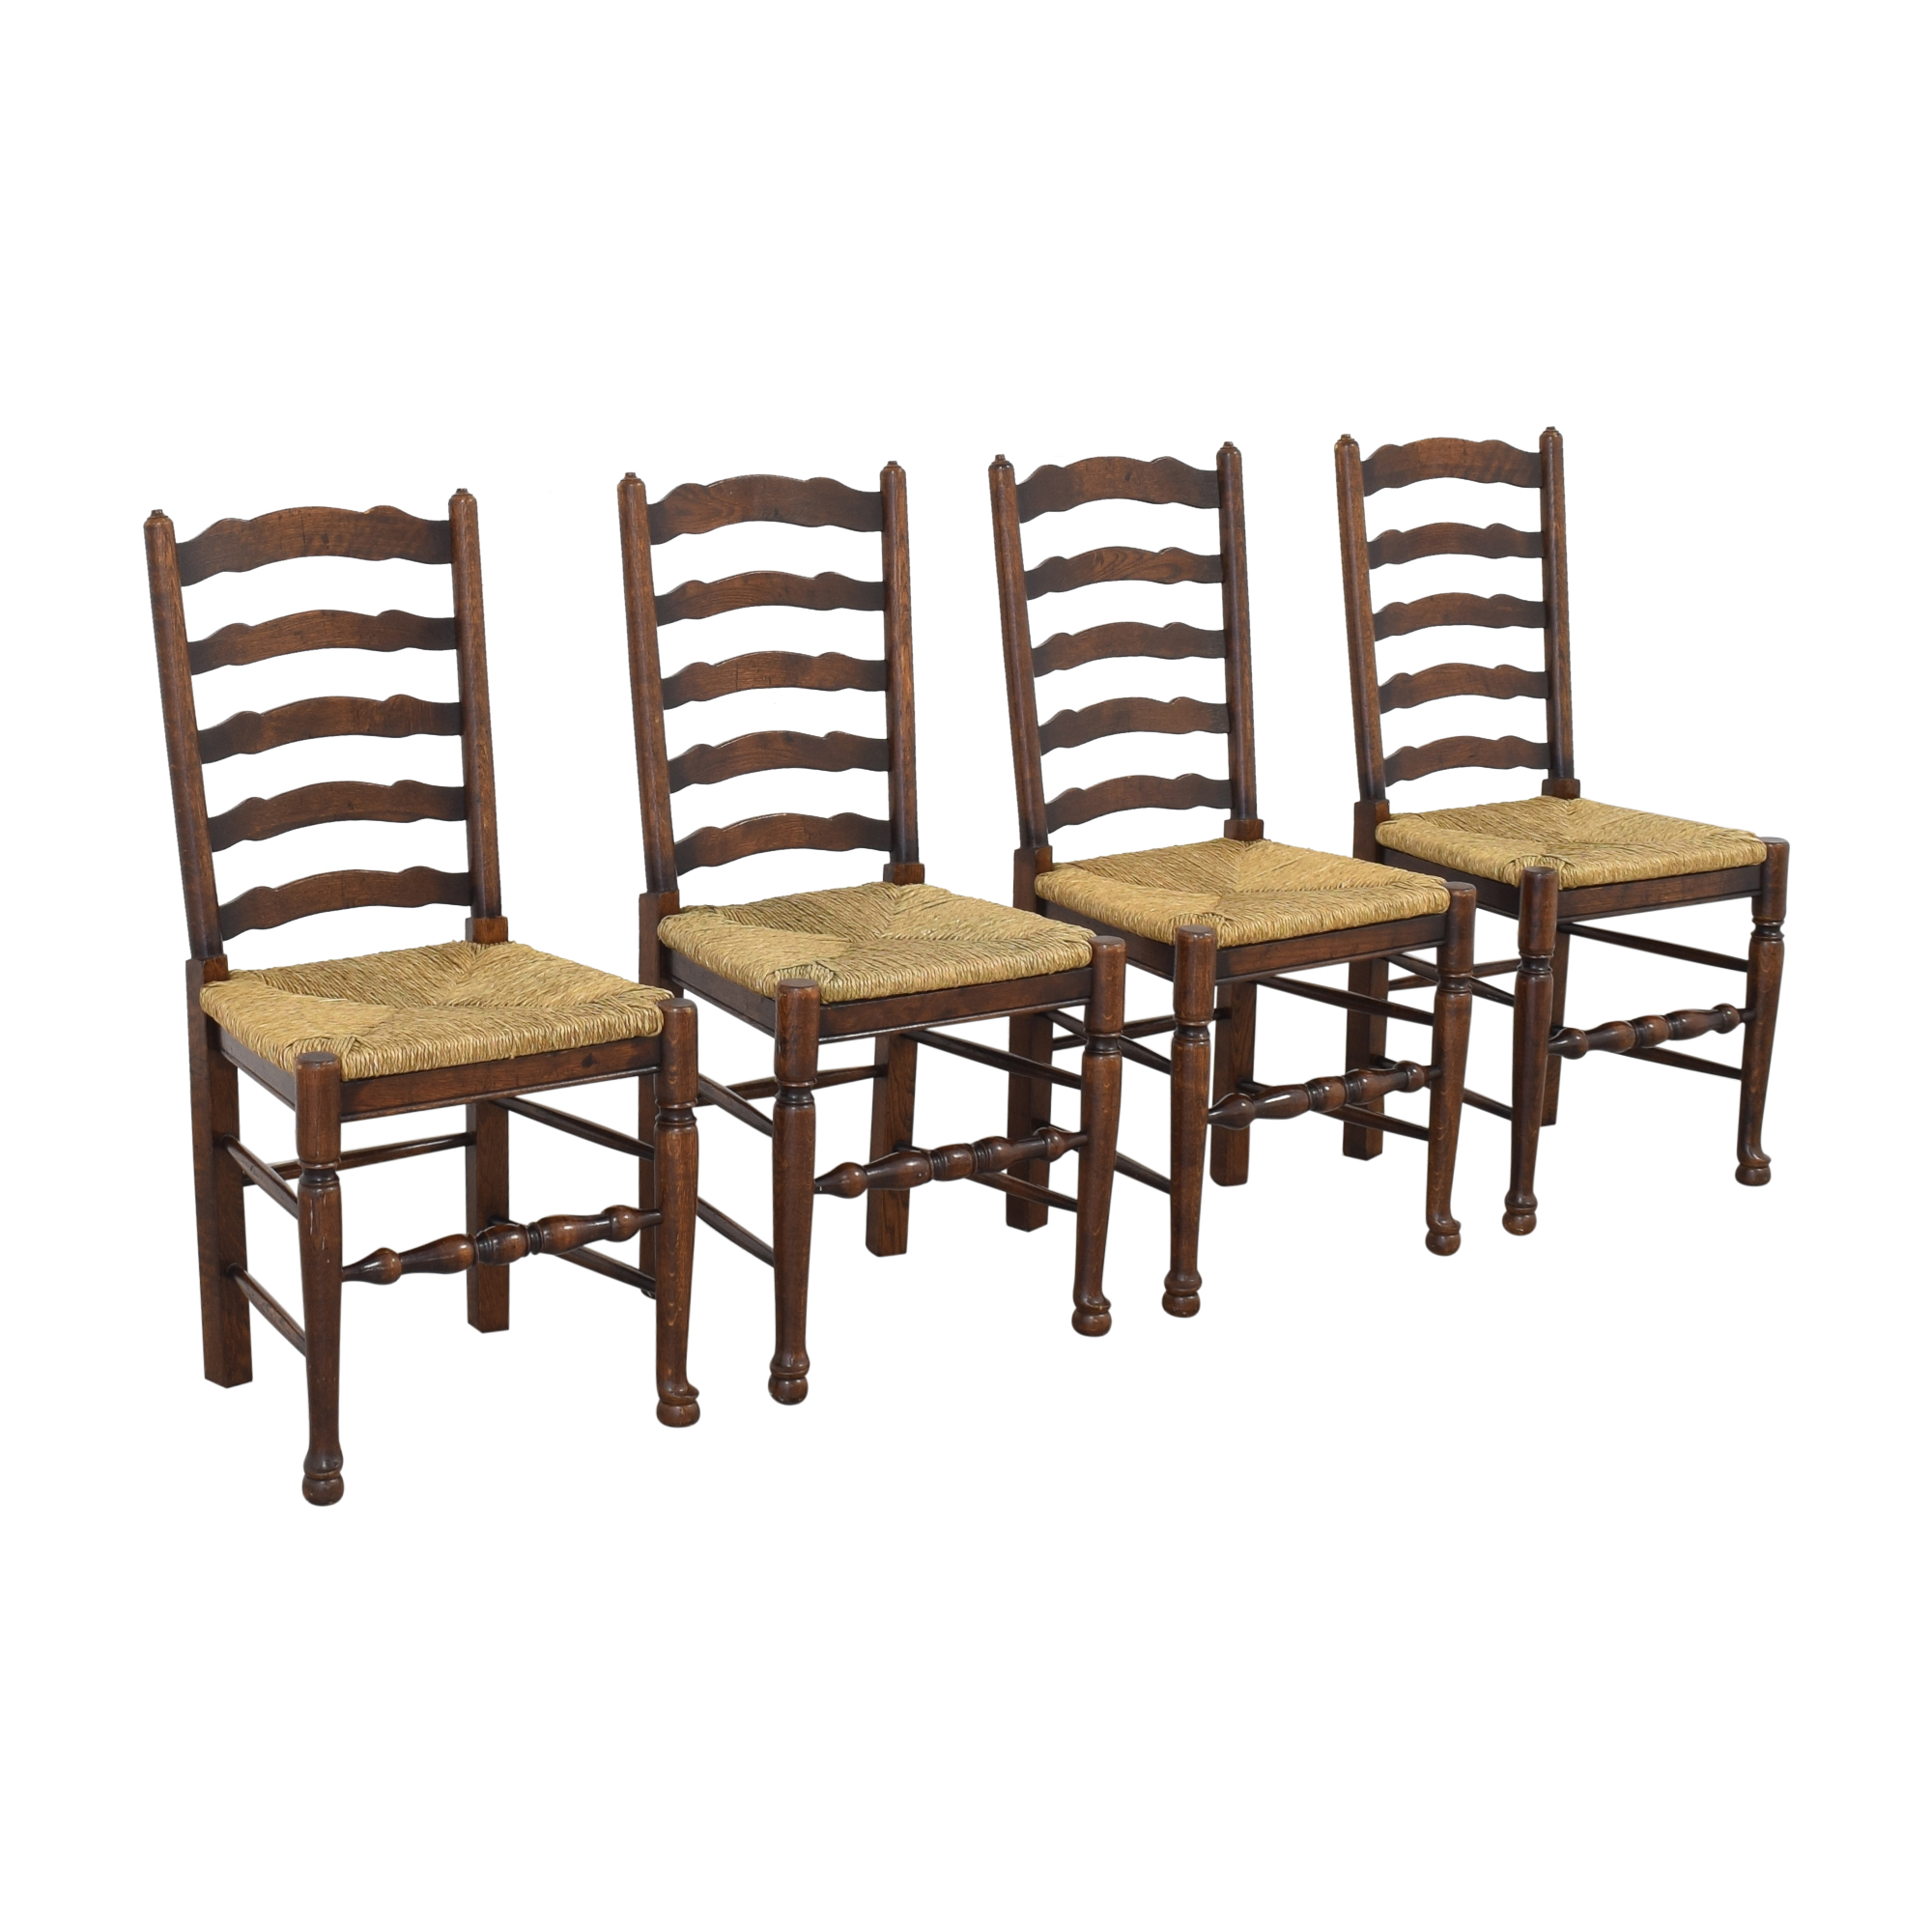 Pottery Barn Pottery Barn Ladder Back Dining Chairs on sale